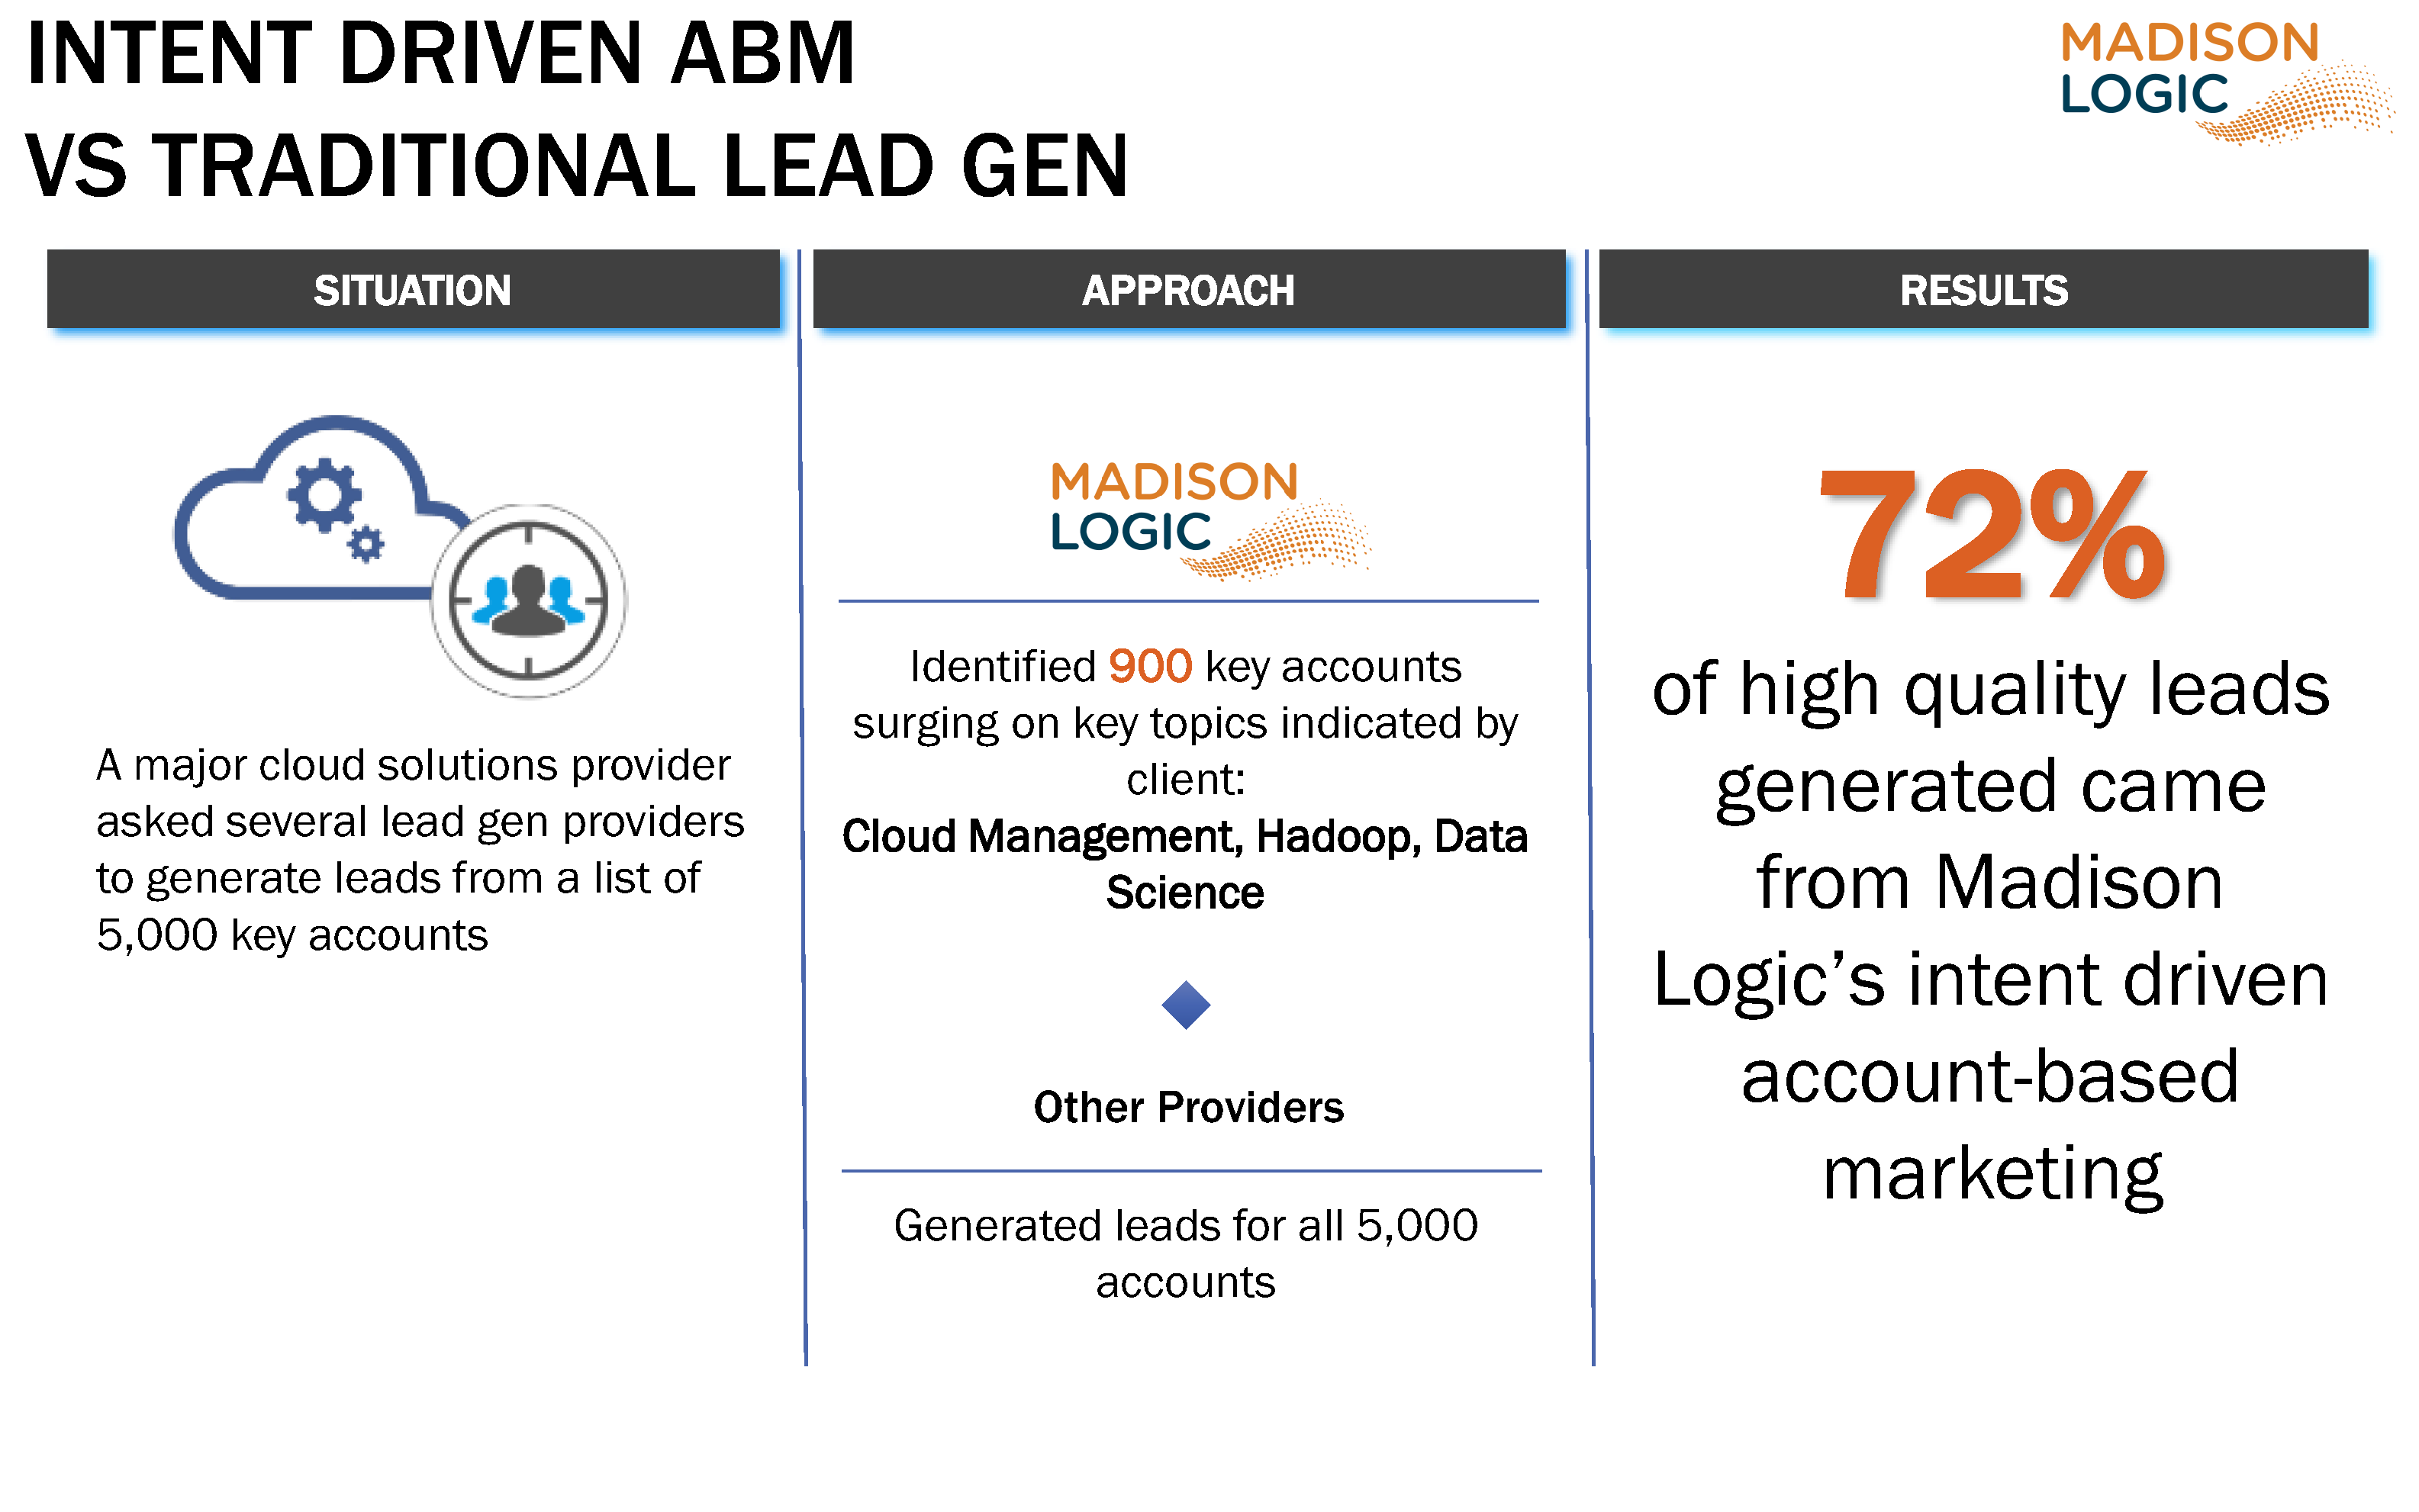 Intent Driven ABM vs Traditional Lead Gen